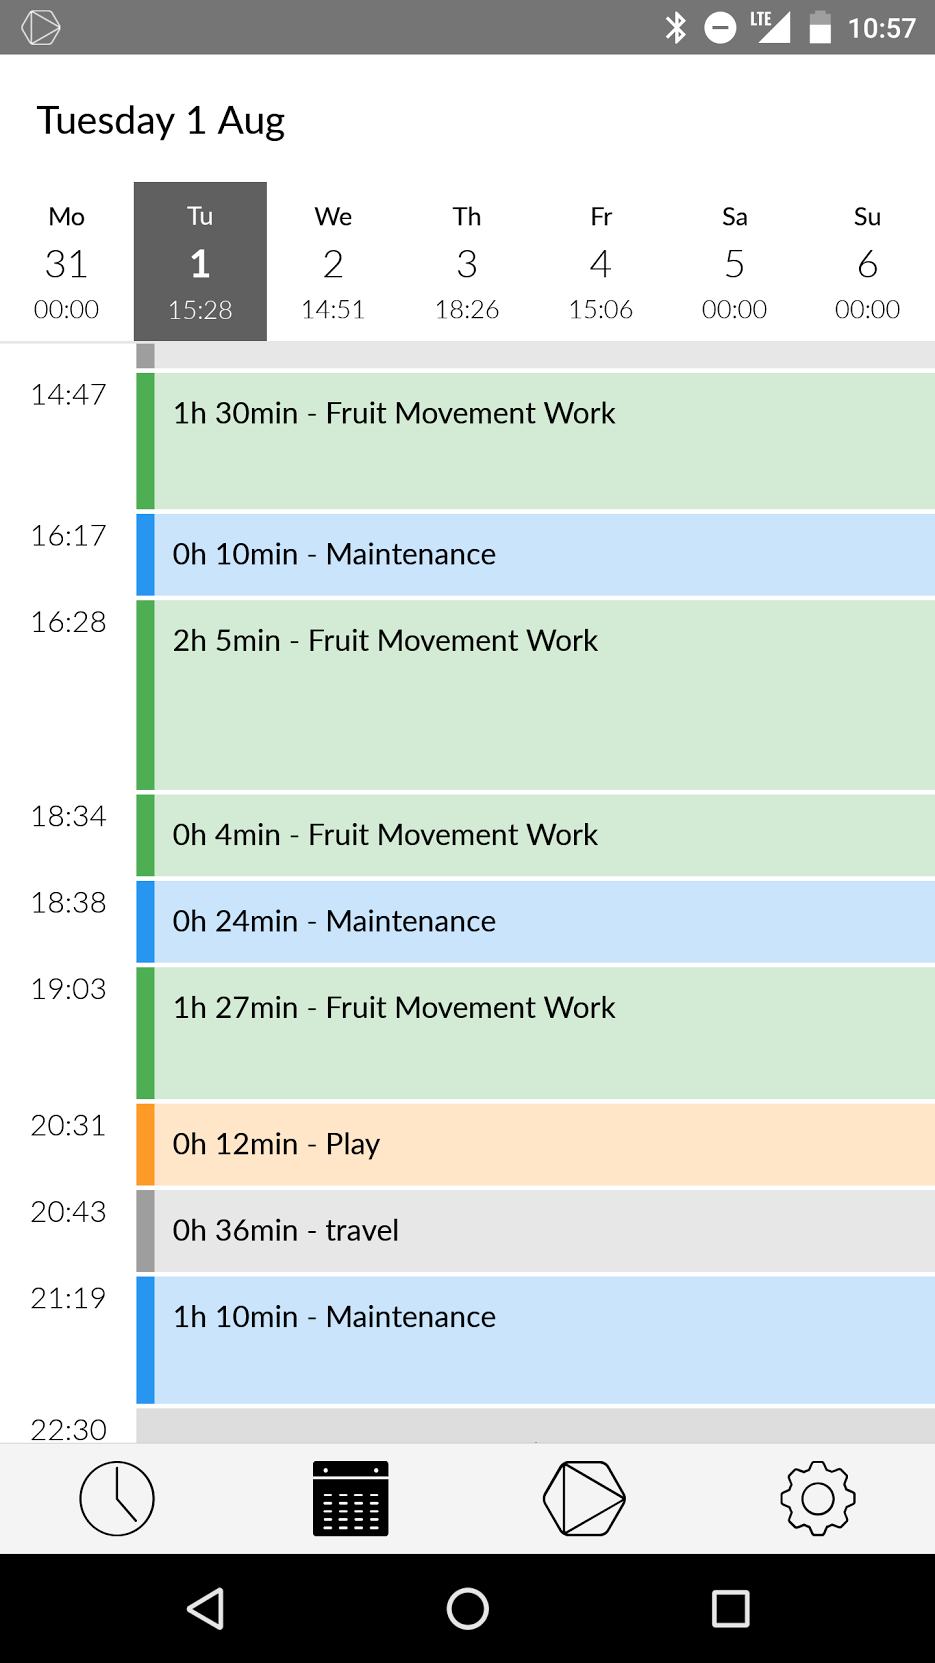 A screenshot of my day on August 1st. I categorize my time between work, maintenance, play, travel, etc.